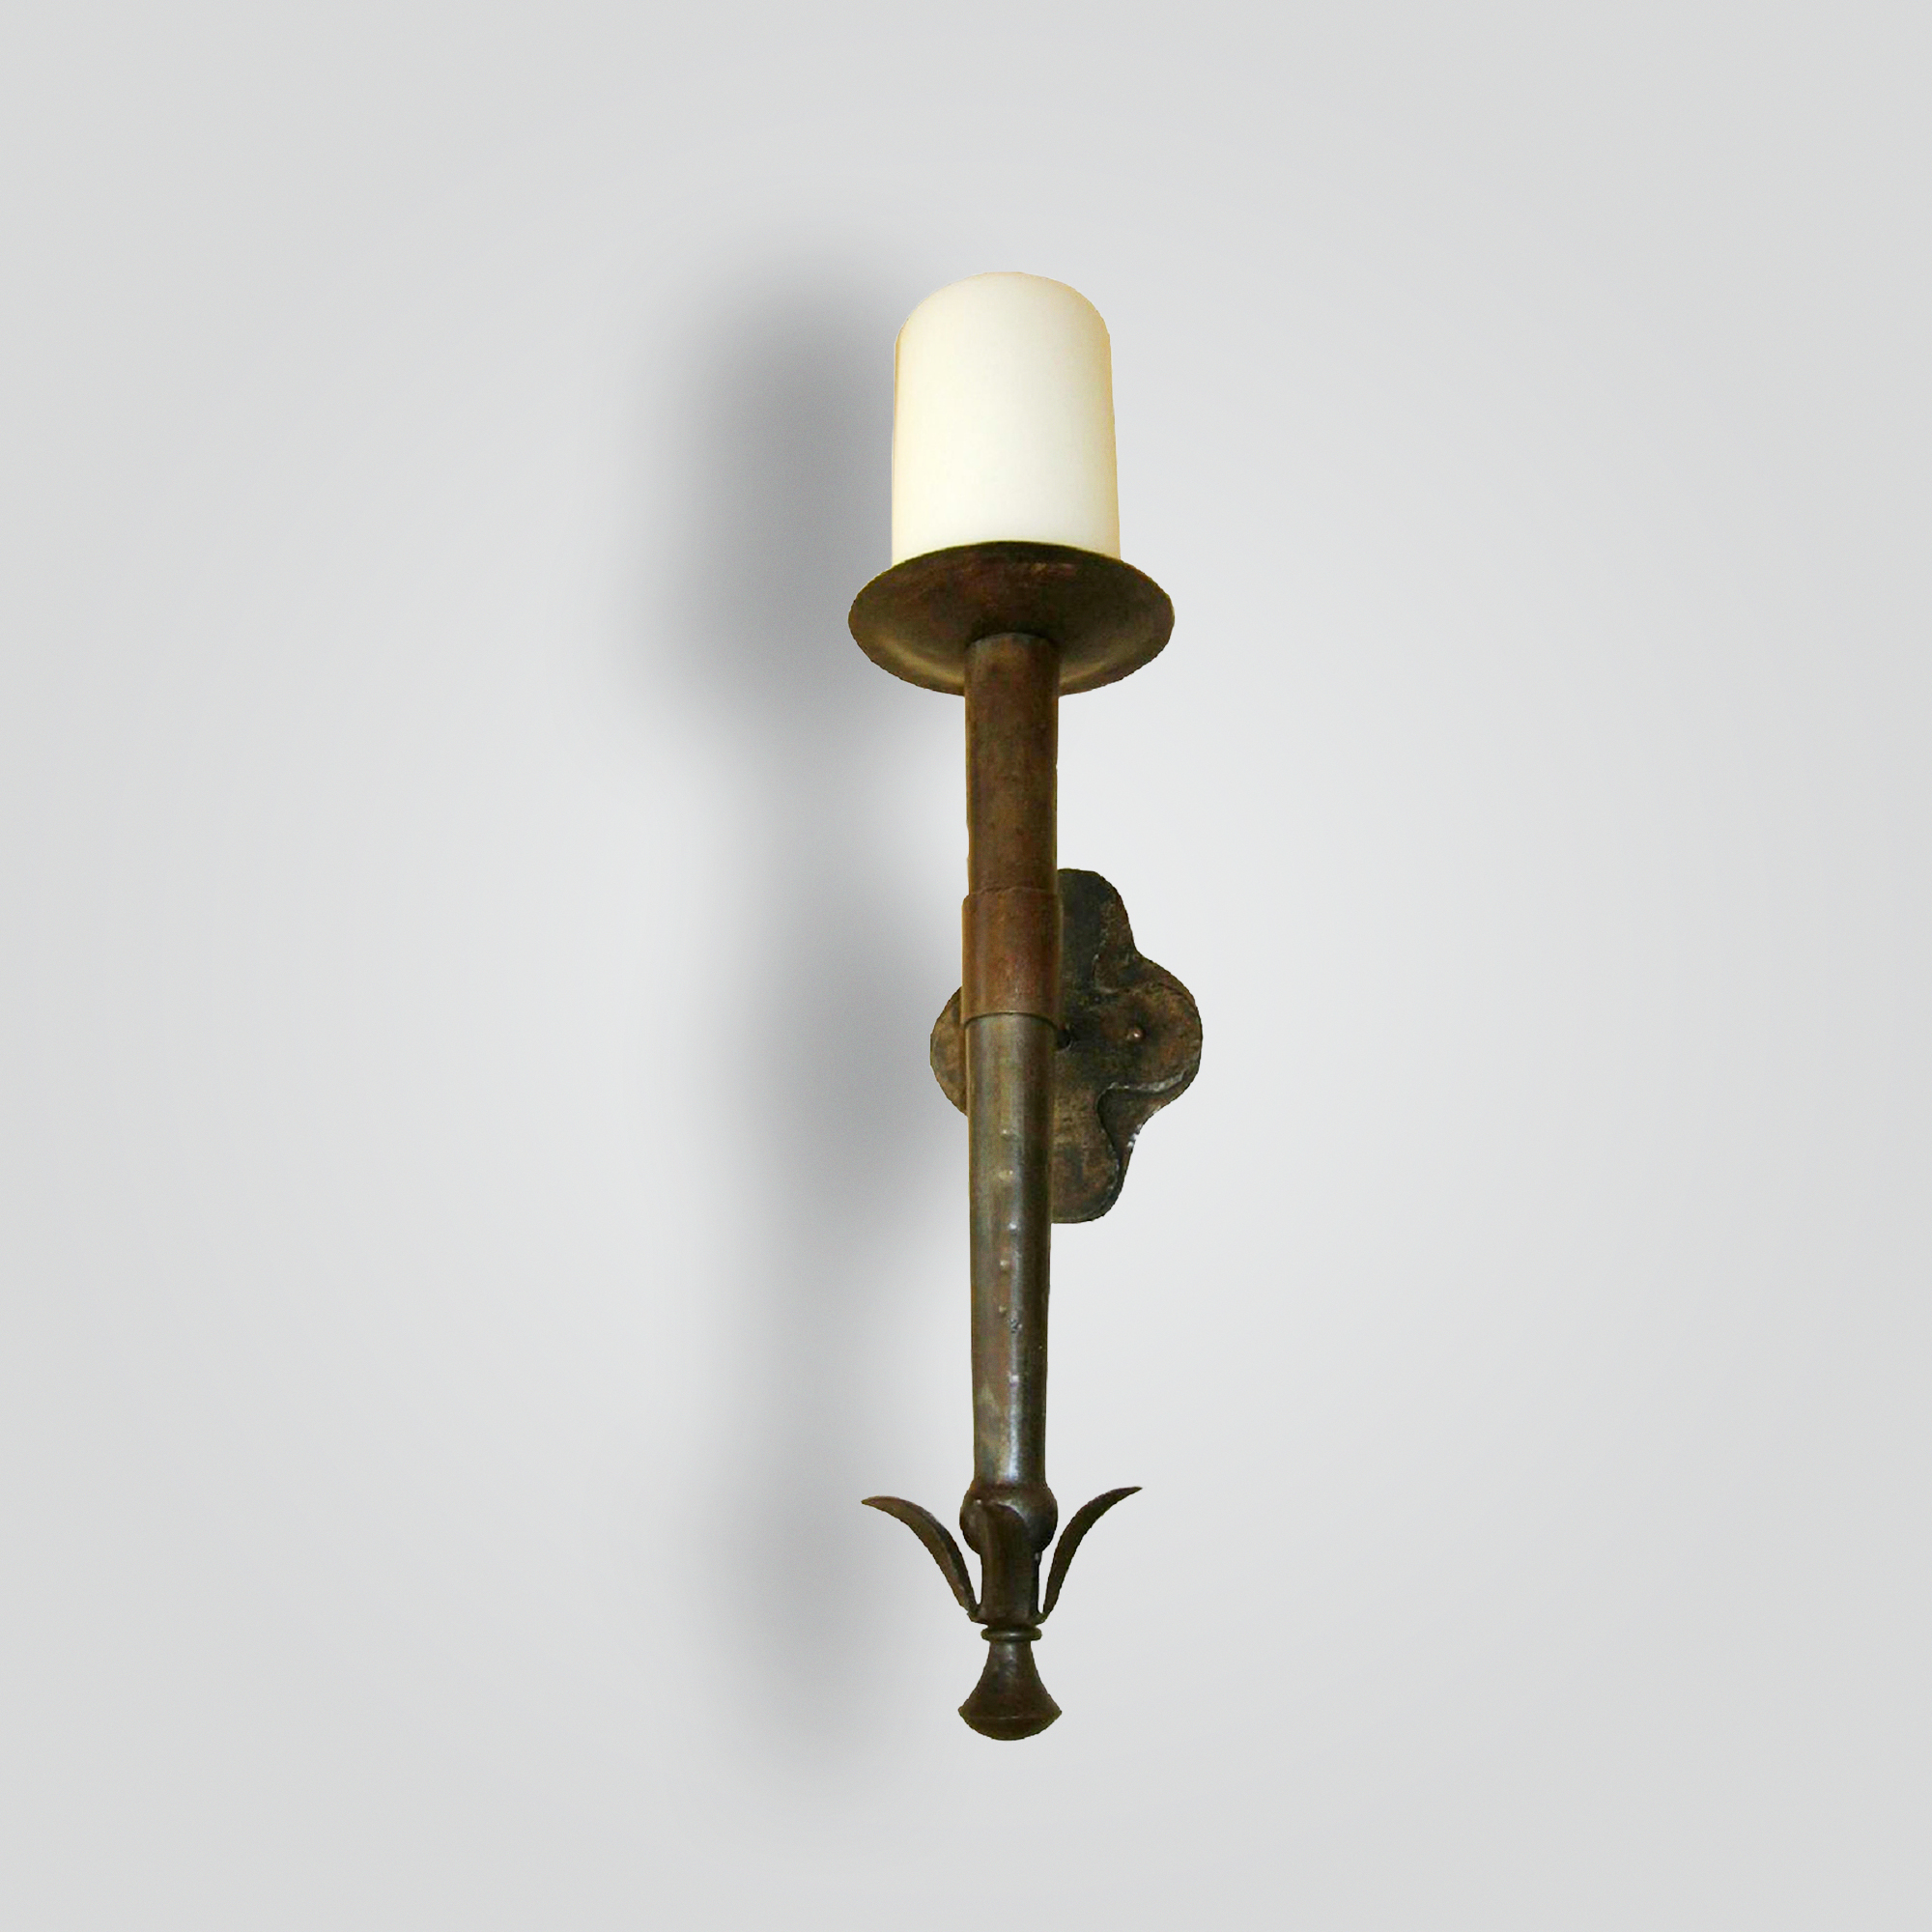 5040-mb1-ir-s-fr Flora Sconce – ADG Lighting Collection